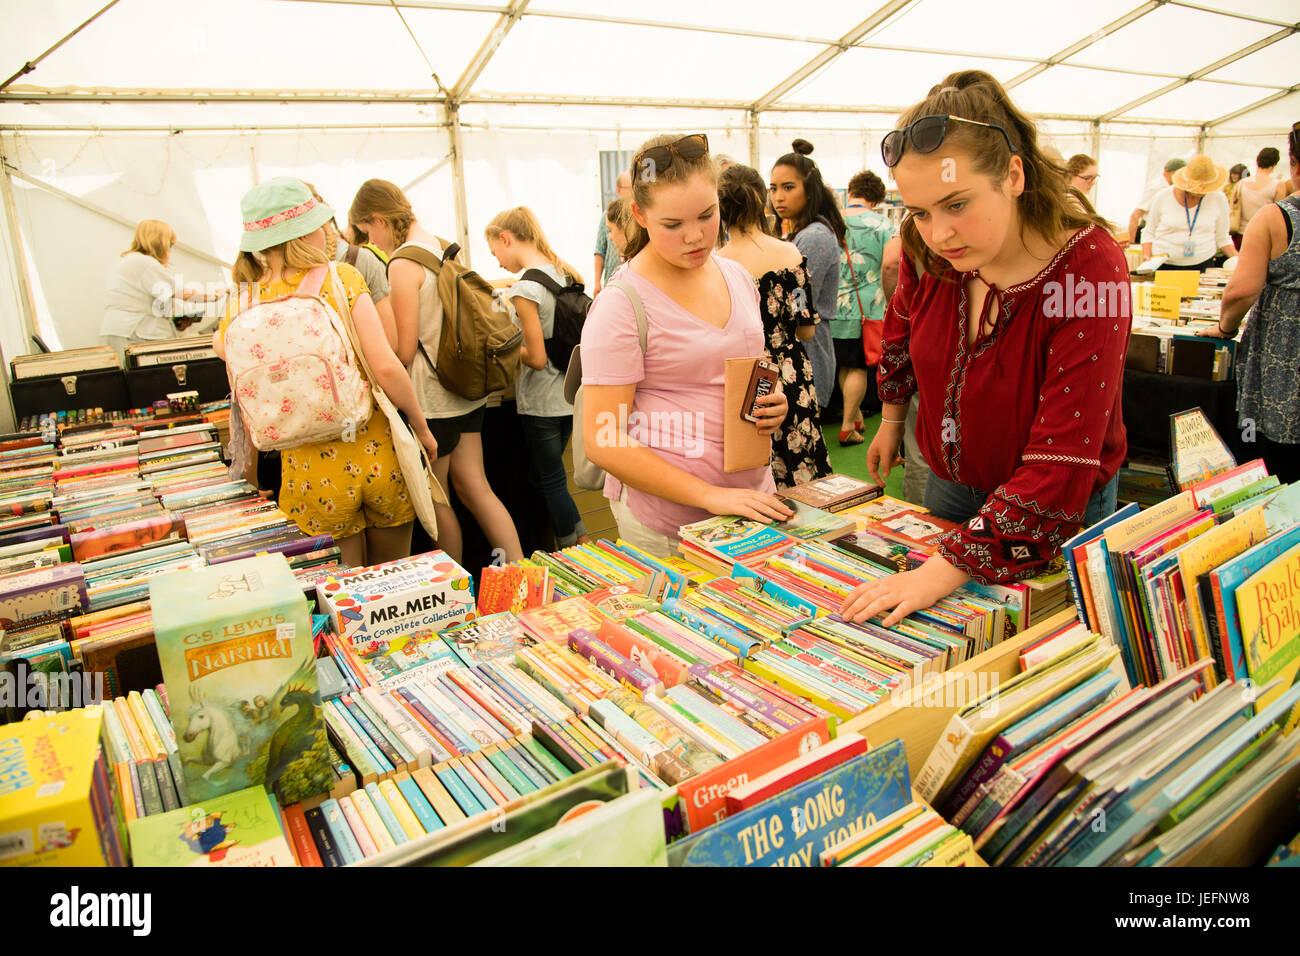 The 30th anniversary Hay Festival of Literature and the Arts, Hay on Wye, Wales UK, May 2017 - Stock Image